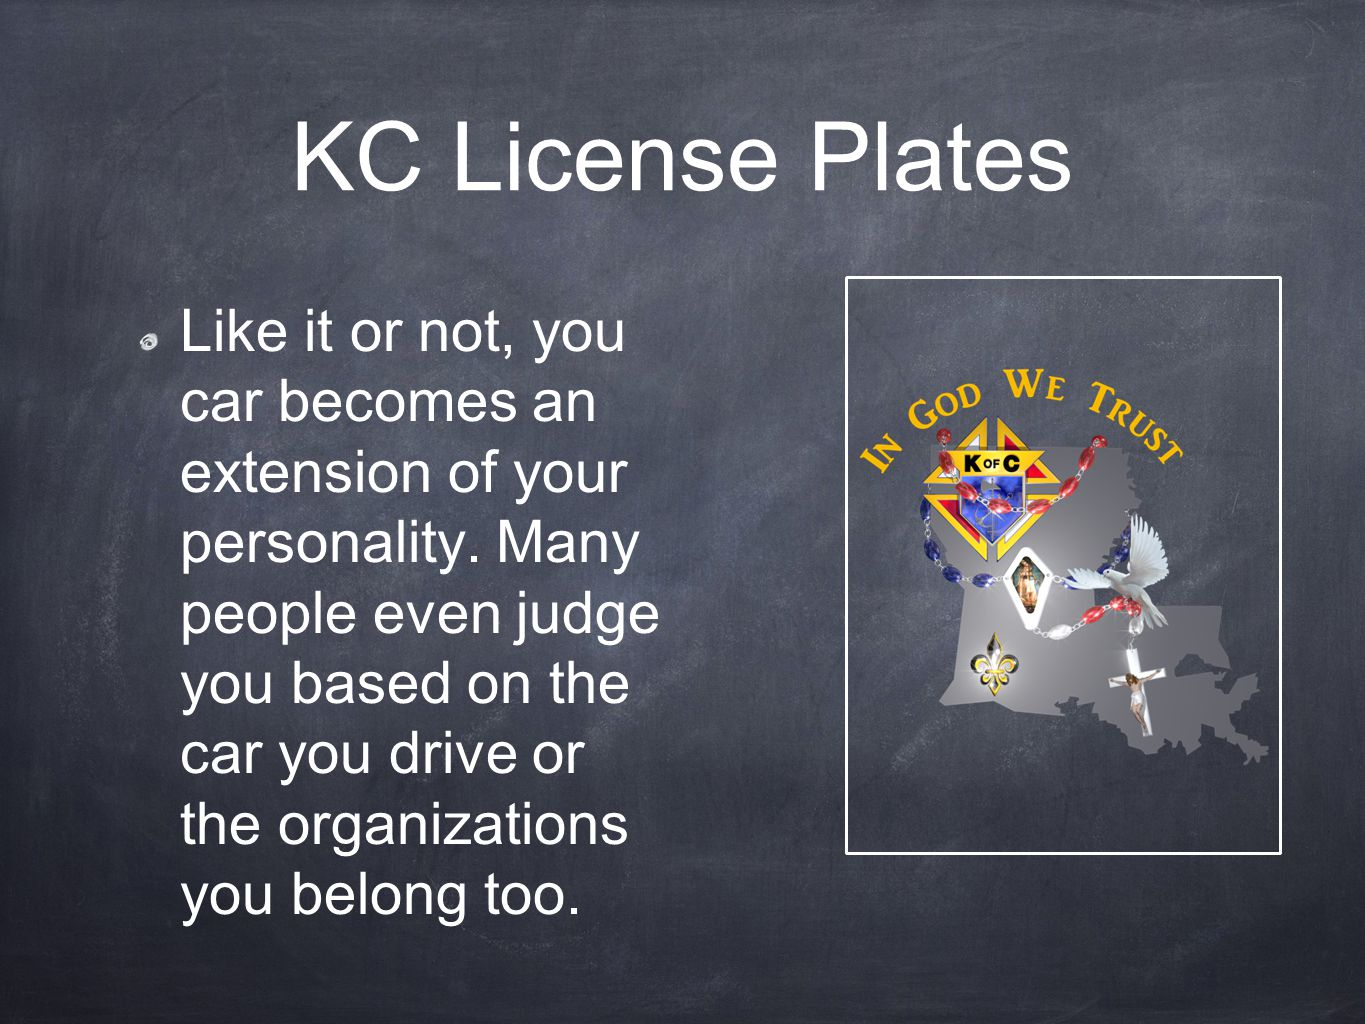 KC License Plates Like it or not, you car becomes an extension of your personality. Many people even judge you based on the car you drive or the organ